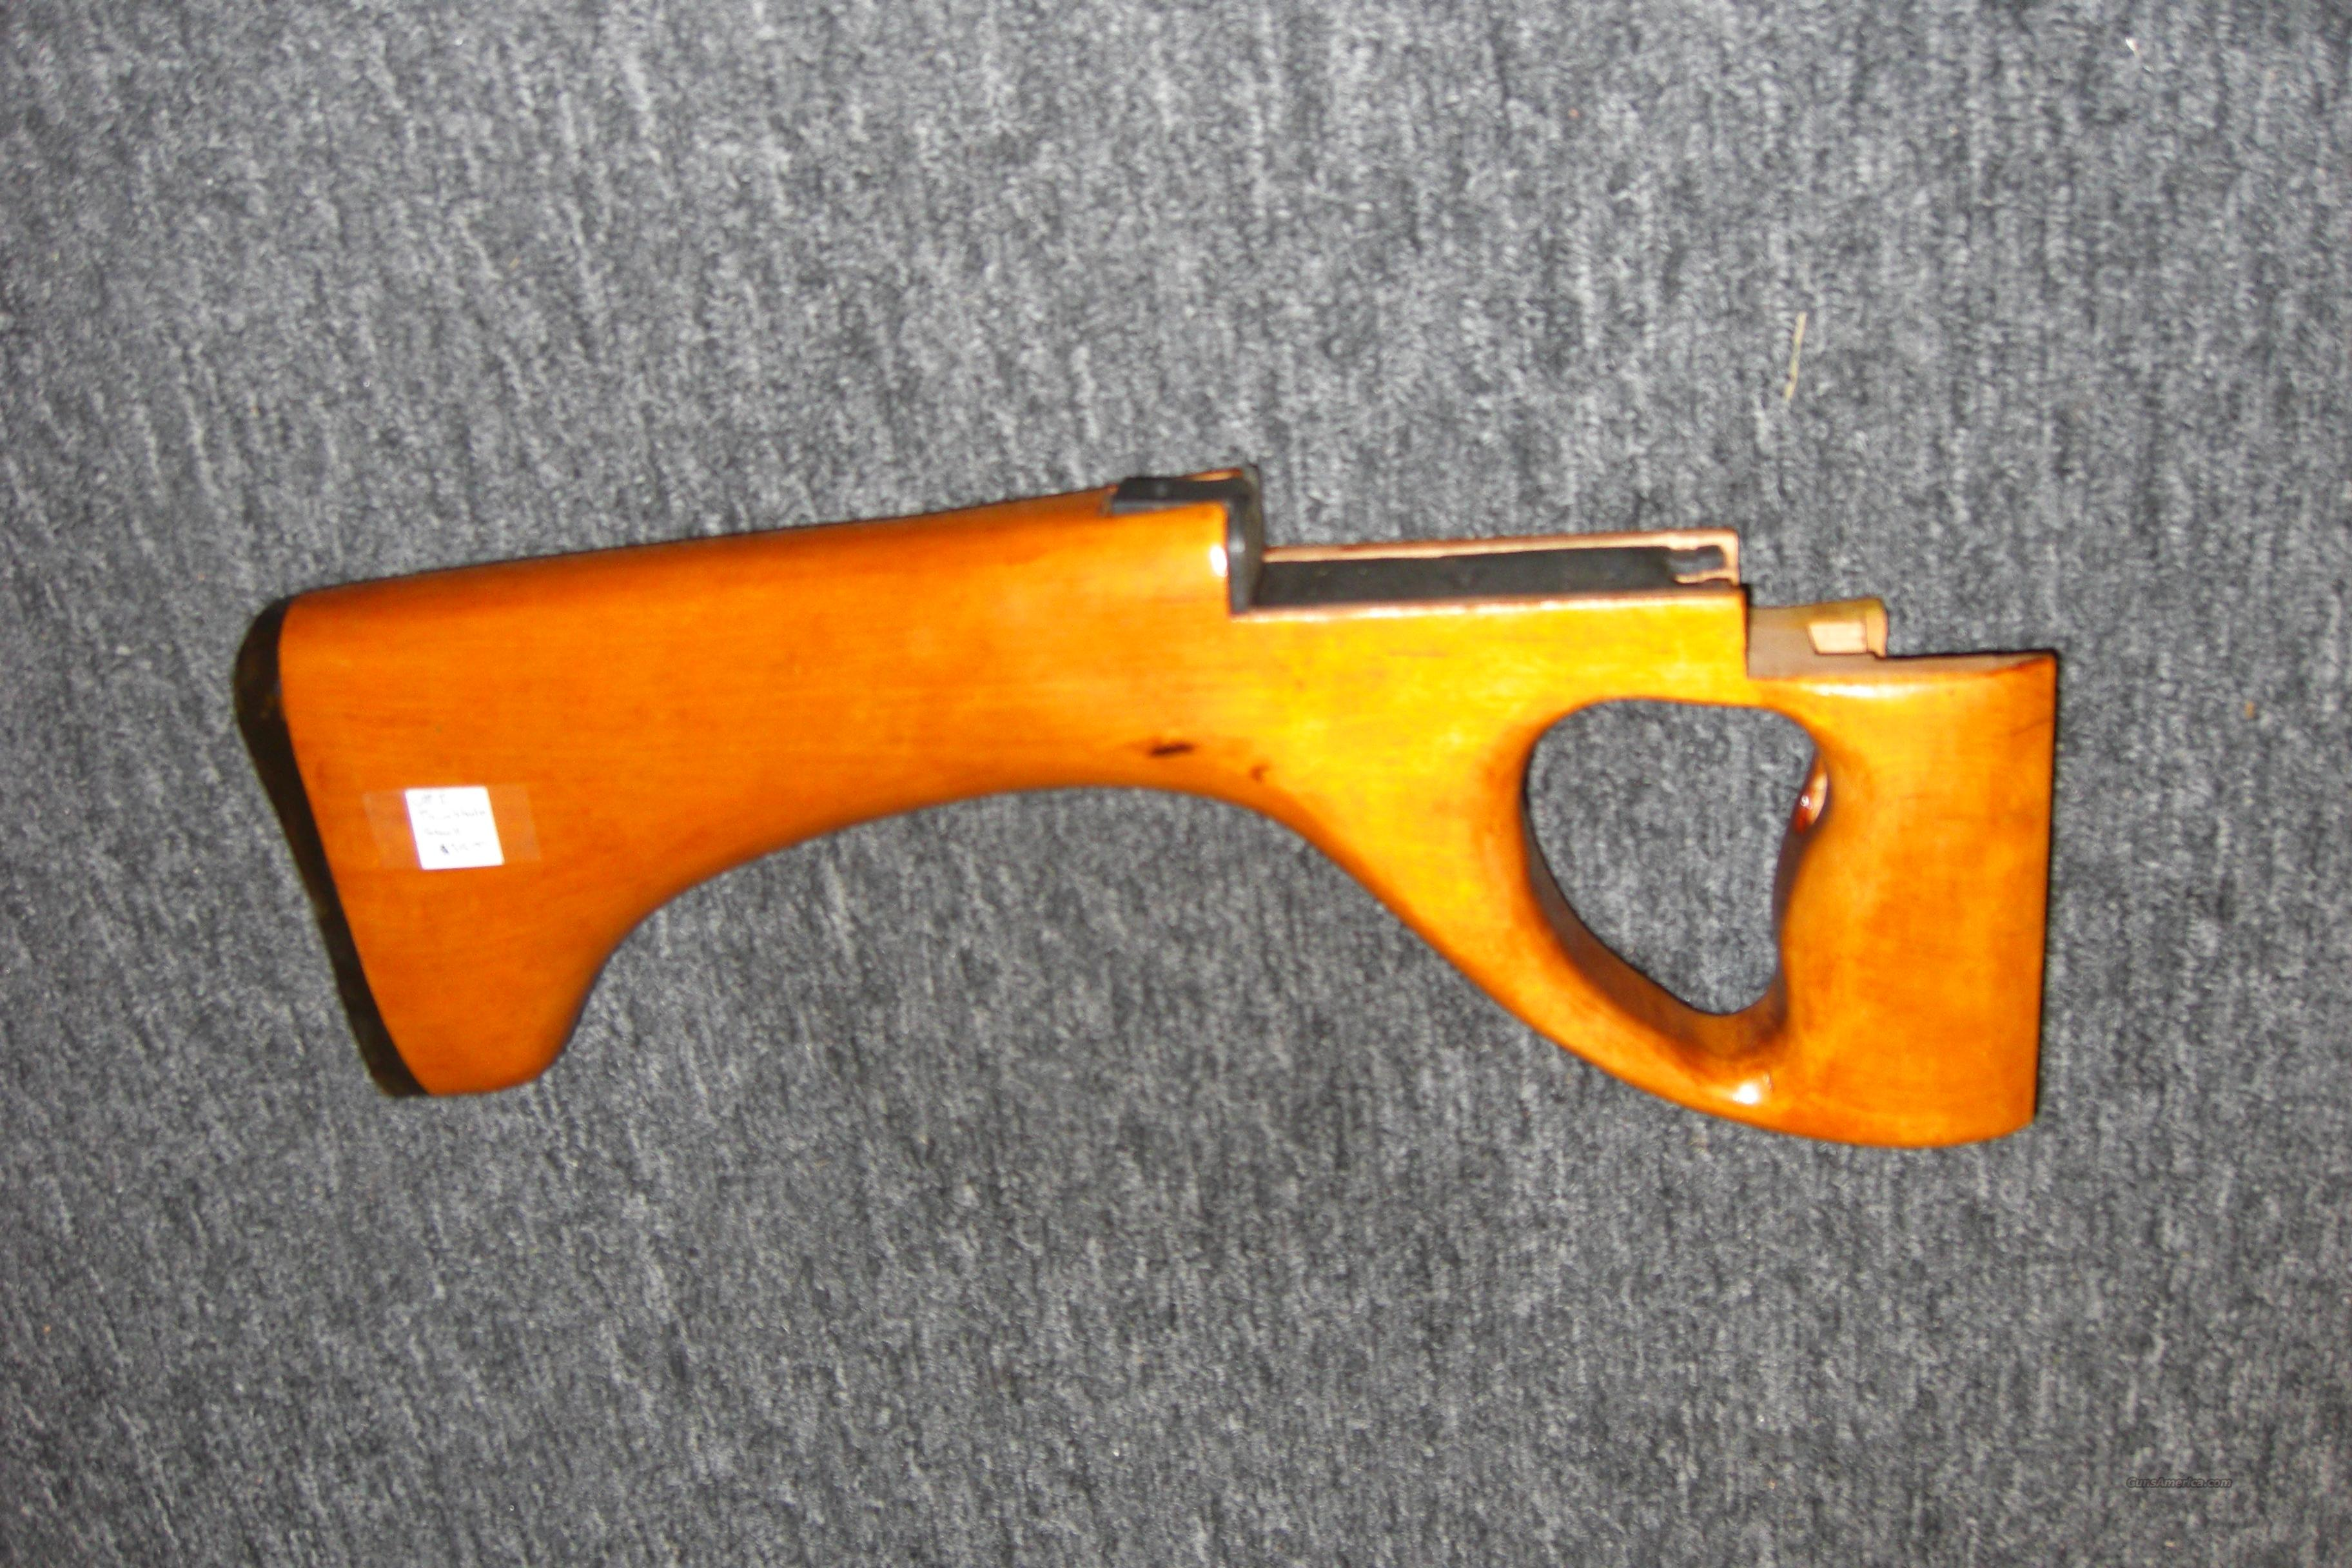 Uzi thumbhole stock  Non-Guns > Gunstocks, Grips & Wood